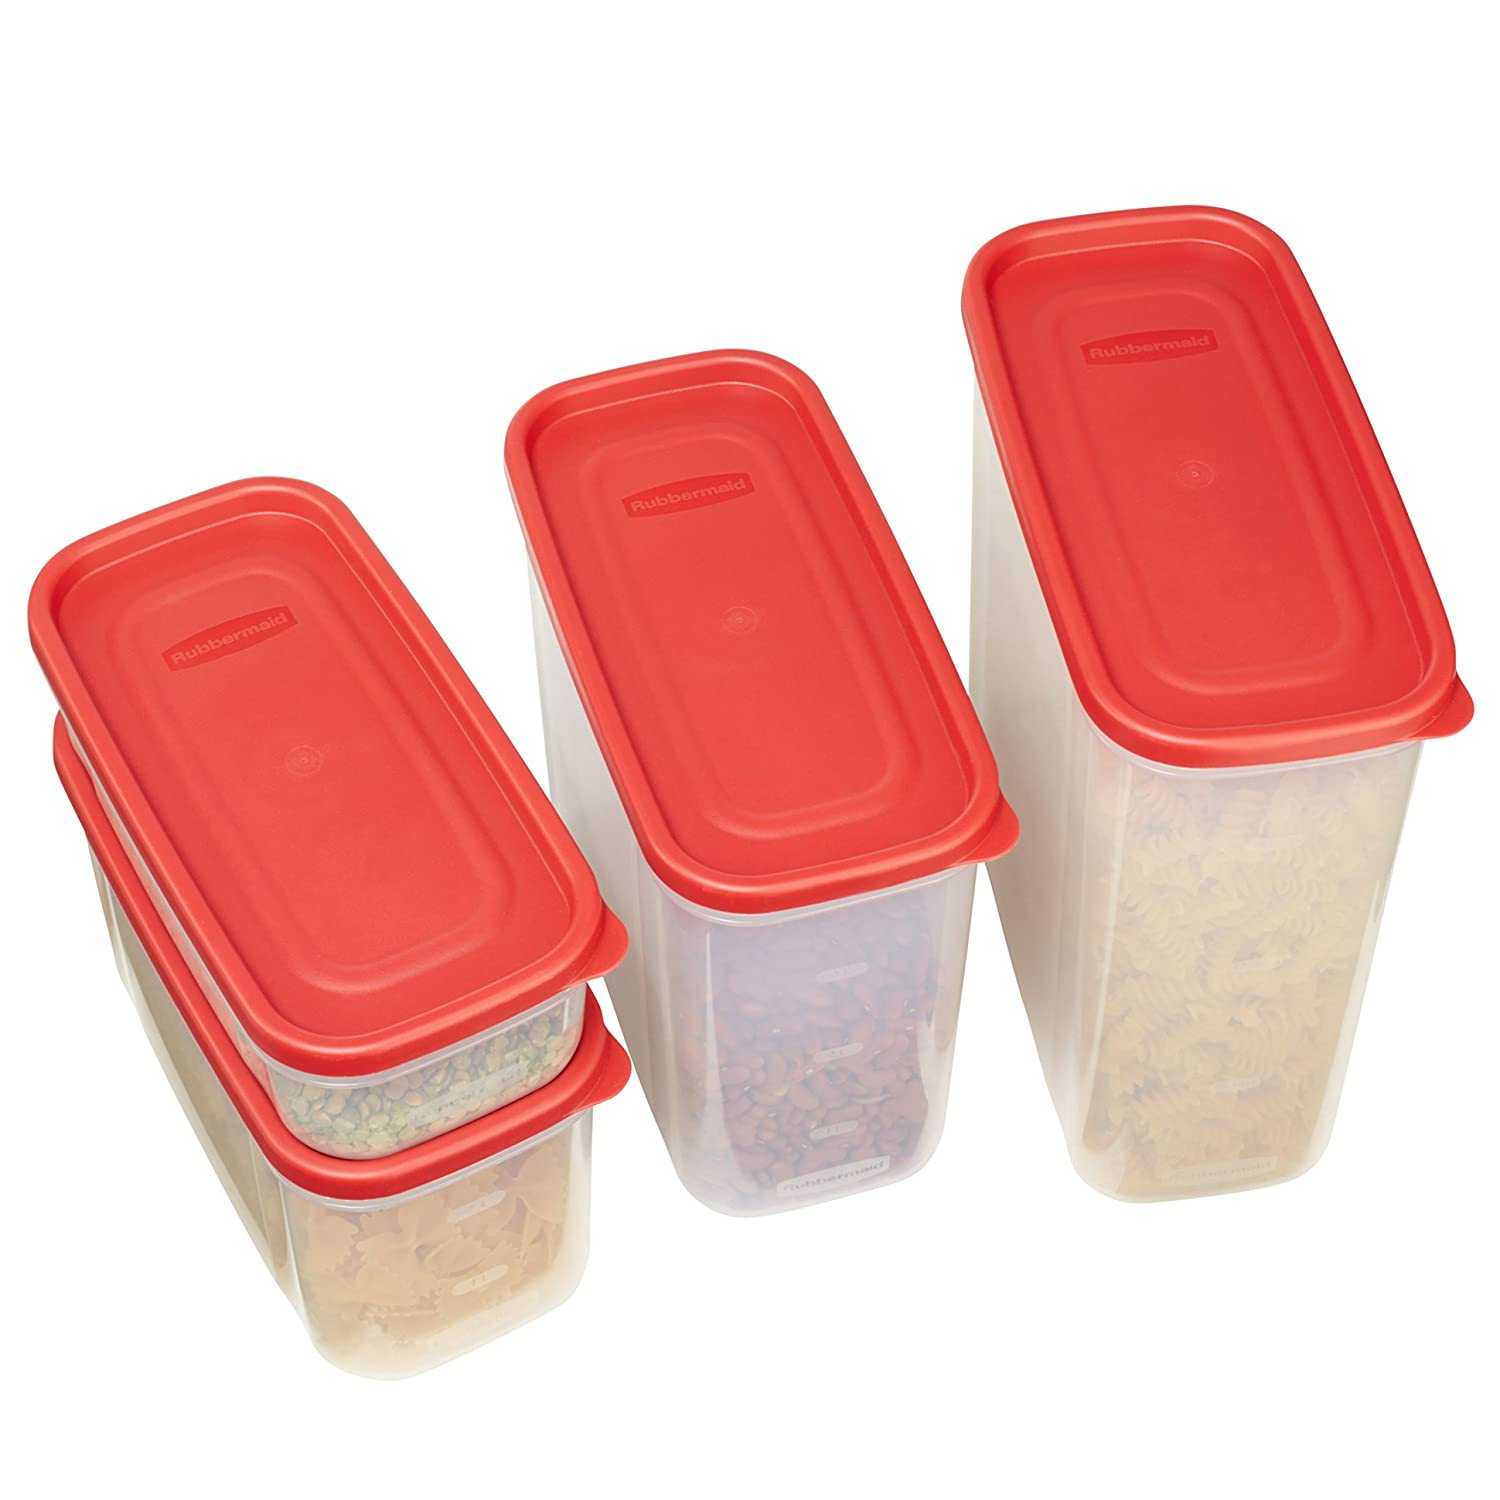 Rubbermaid Modular Food Storage Canisters Racer Red 8 Lock Ampamp Ordinary Crisper Hpl932d700ml Piece Set 1776474 Containers Kitchen Dining